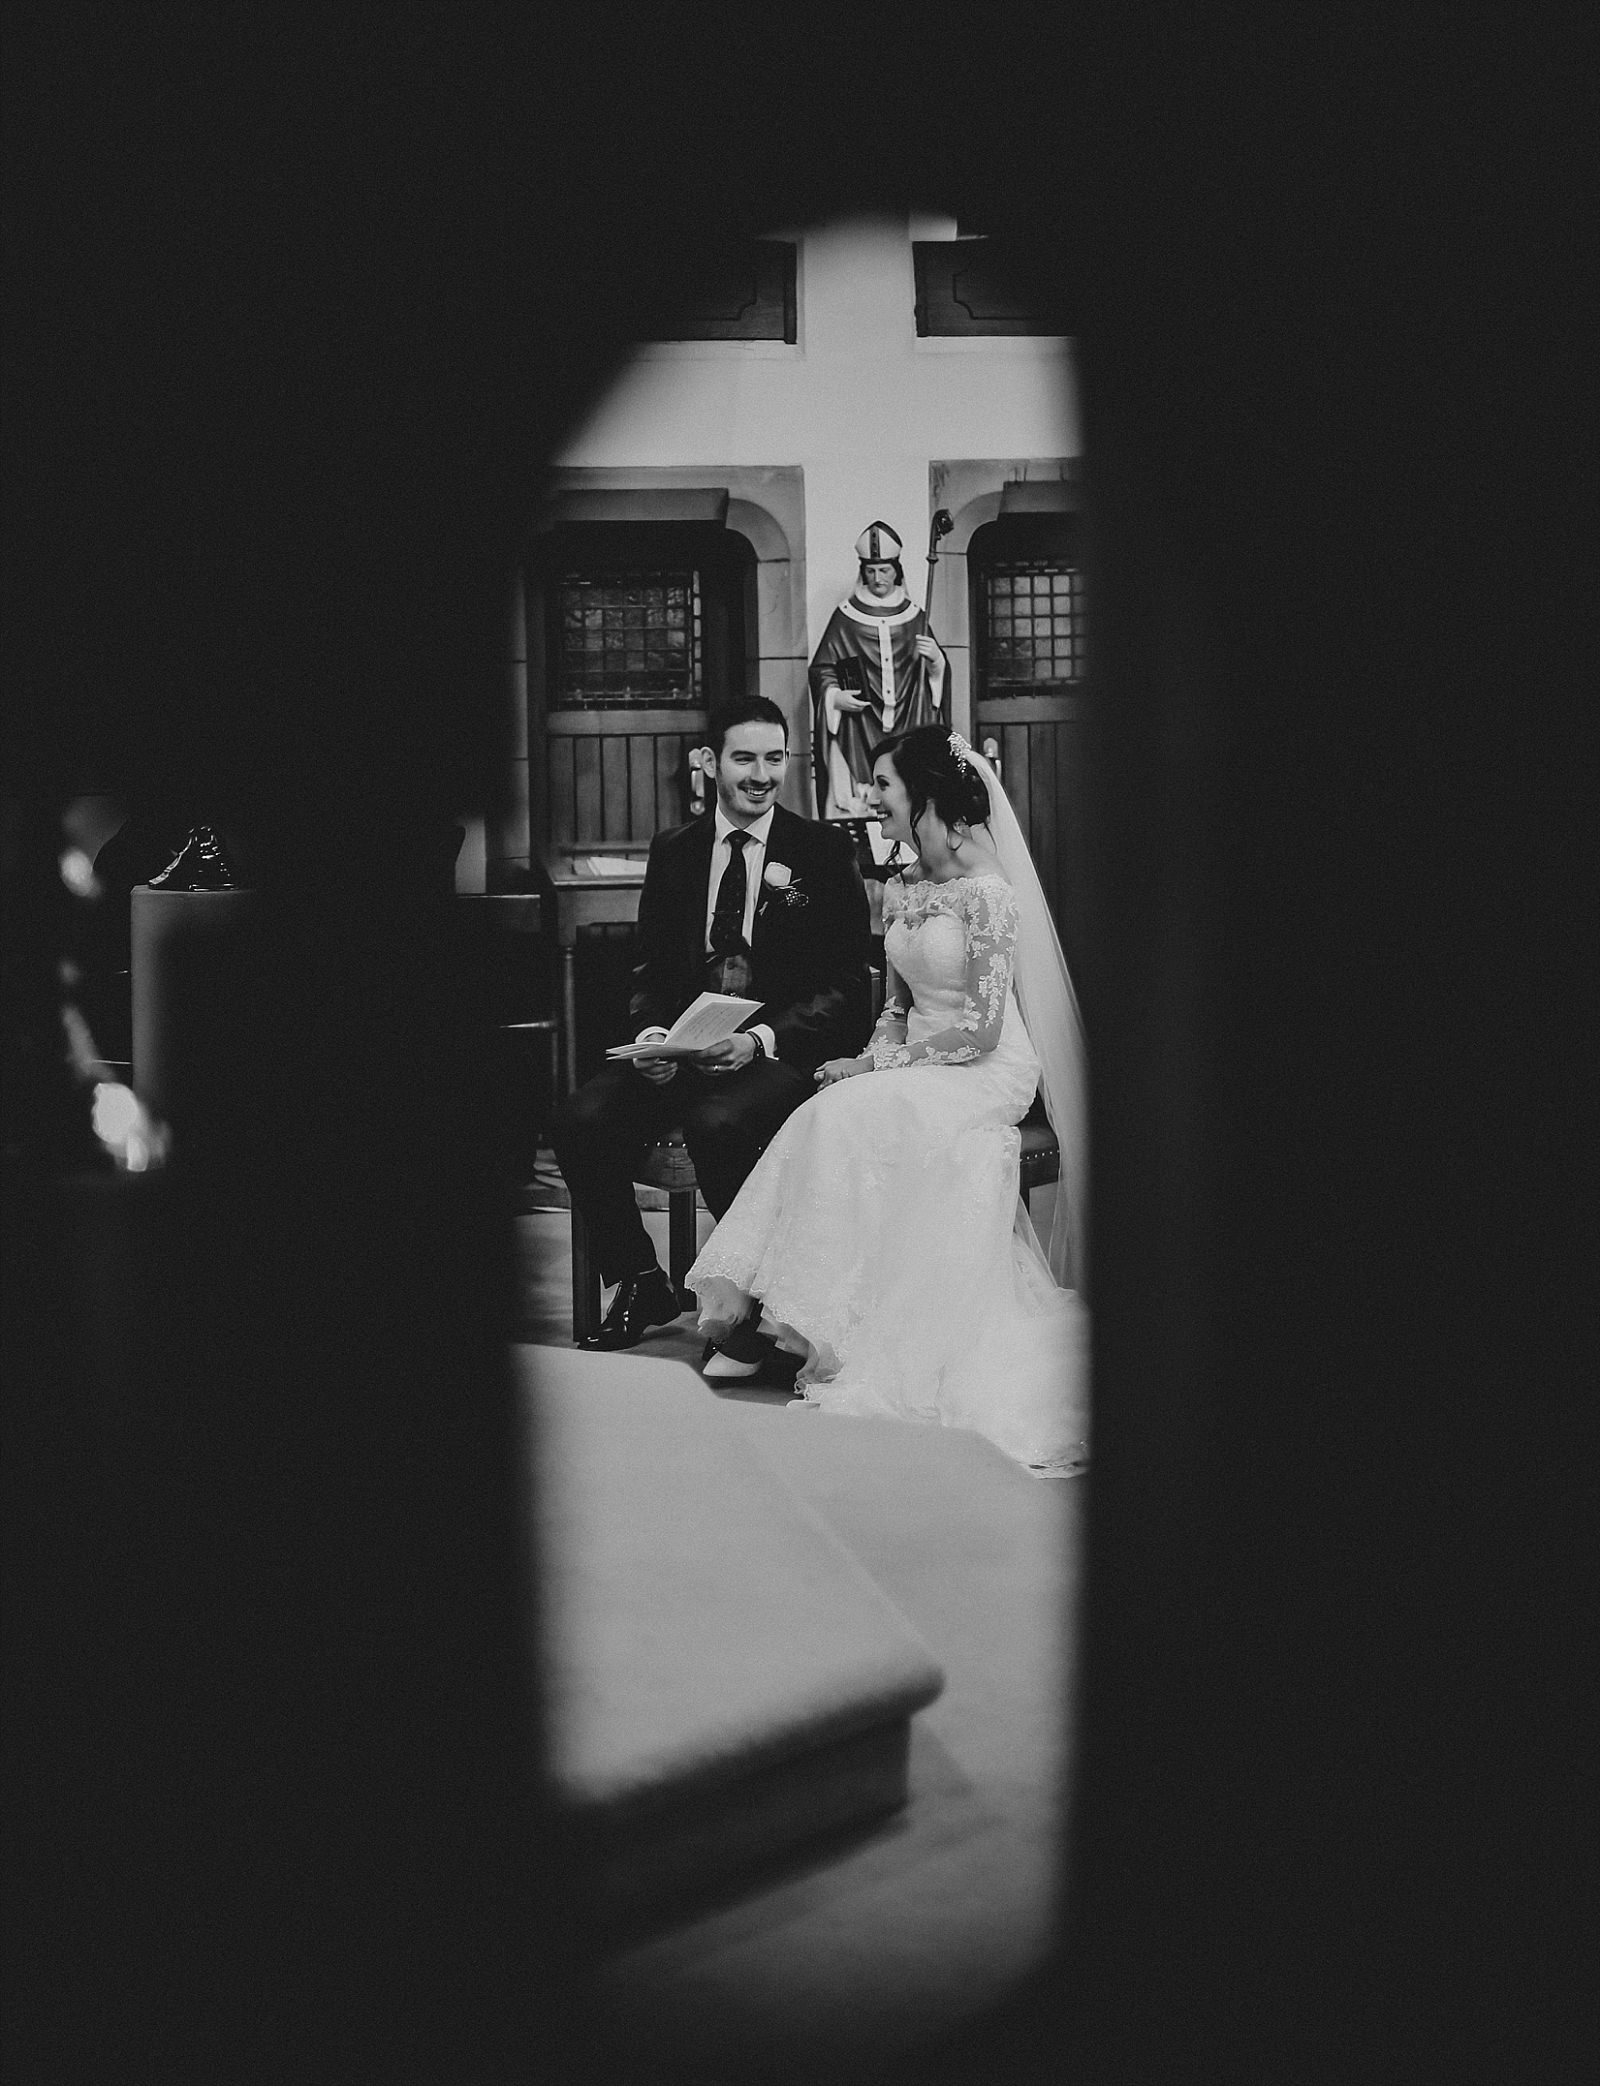 eaves hall wedding photographer captures happy bride and groom